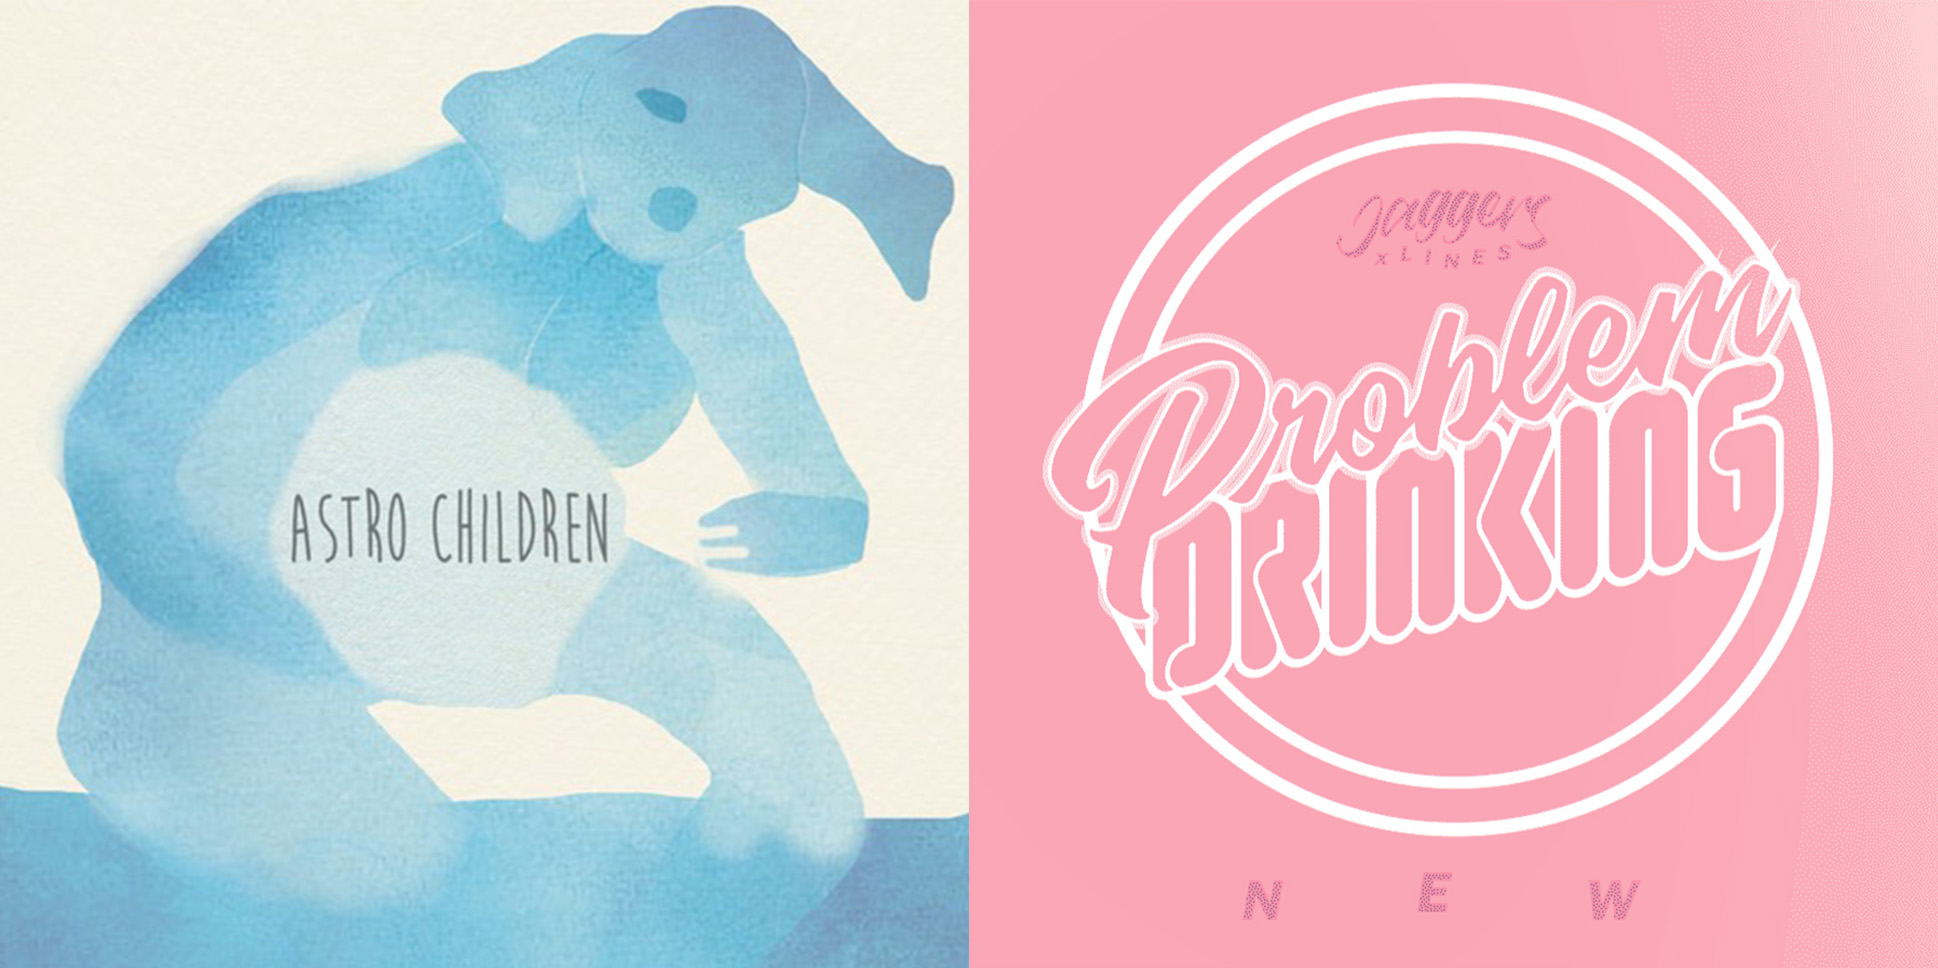 Astro Children and Jaggers x Lines - Triple Release Special